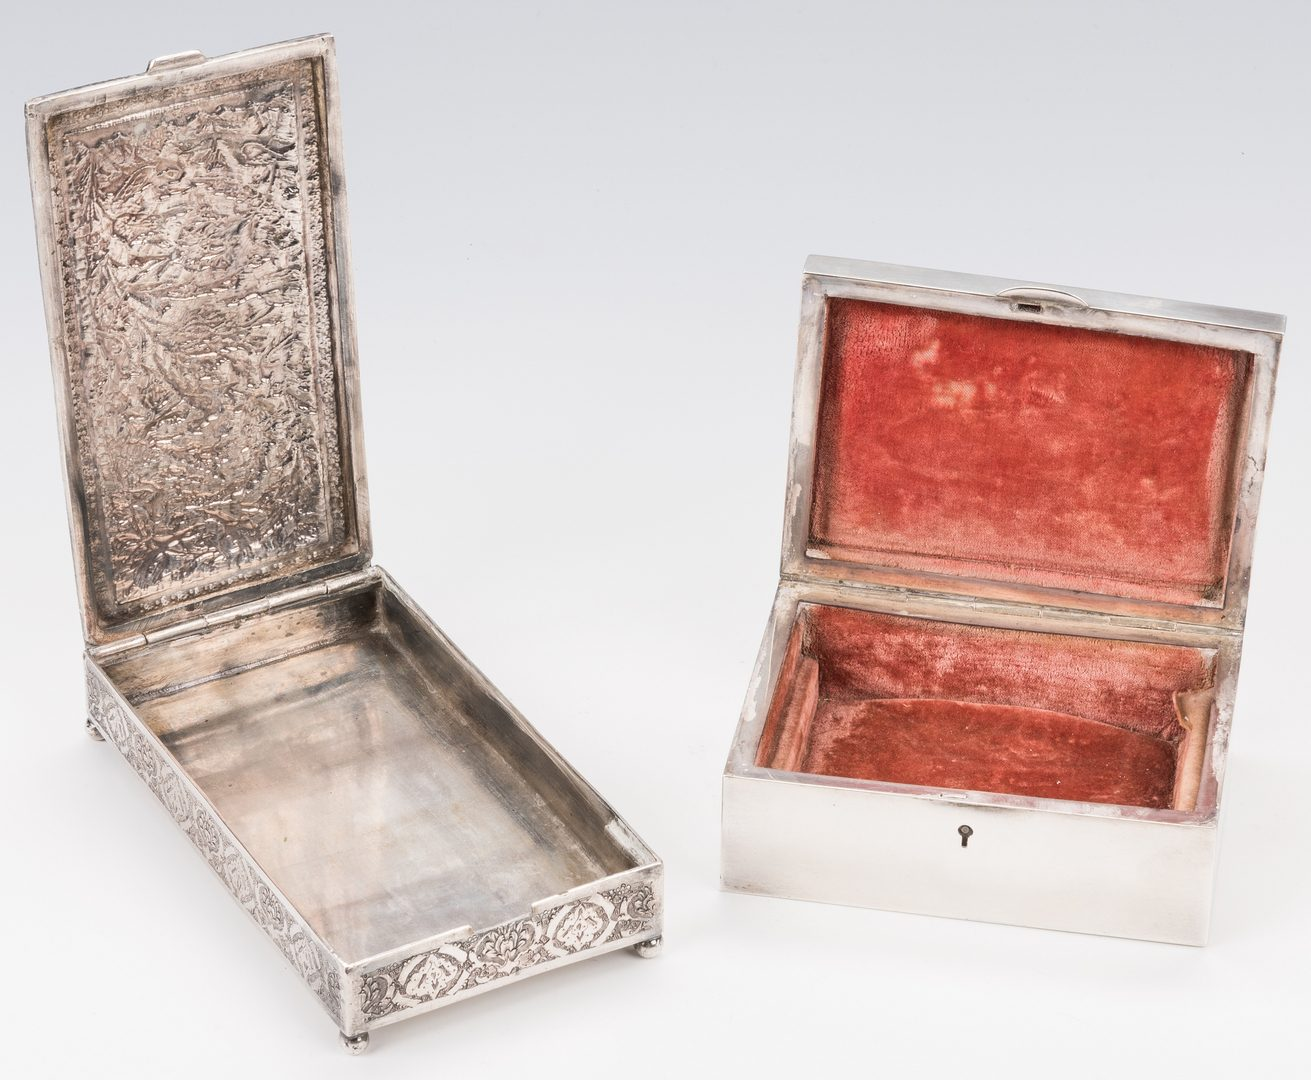 Lot 754: 4 Decorative Items, inc. 2 silver boxes, Japanese accordion book